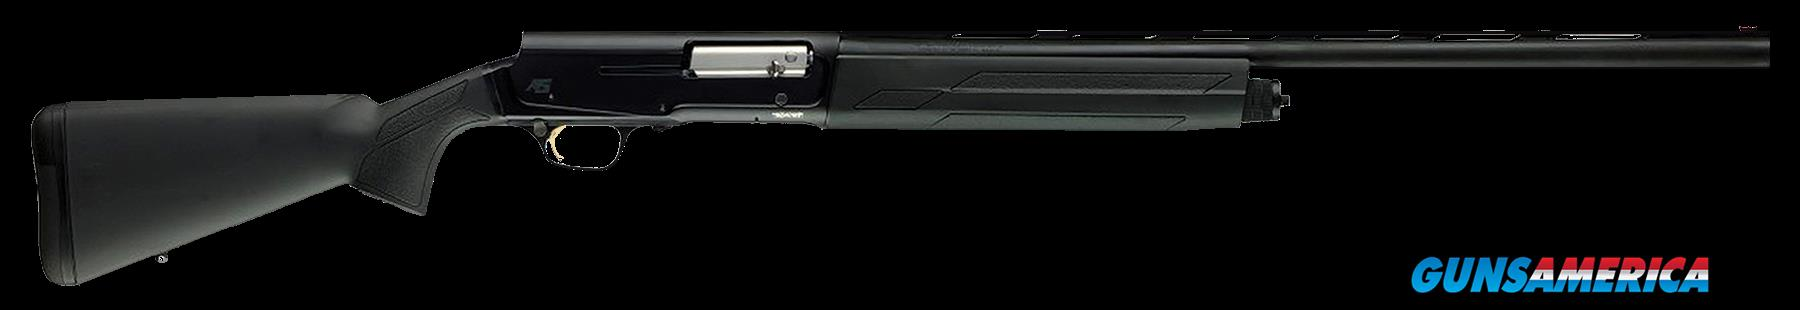 "Browning 0118012005 A5 Stalker Semi-Automatic 12 Gauge 26"" 3.5"" Black Synthetic Stk Black Aluminum  Guns > Shotguns > Browning Shotguns > Autoloaders > Hunting"